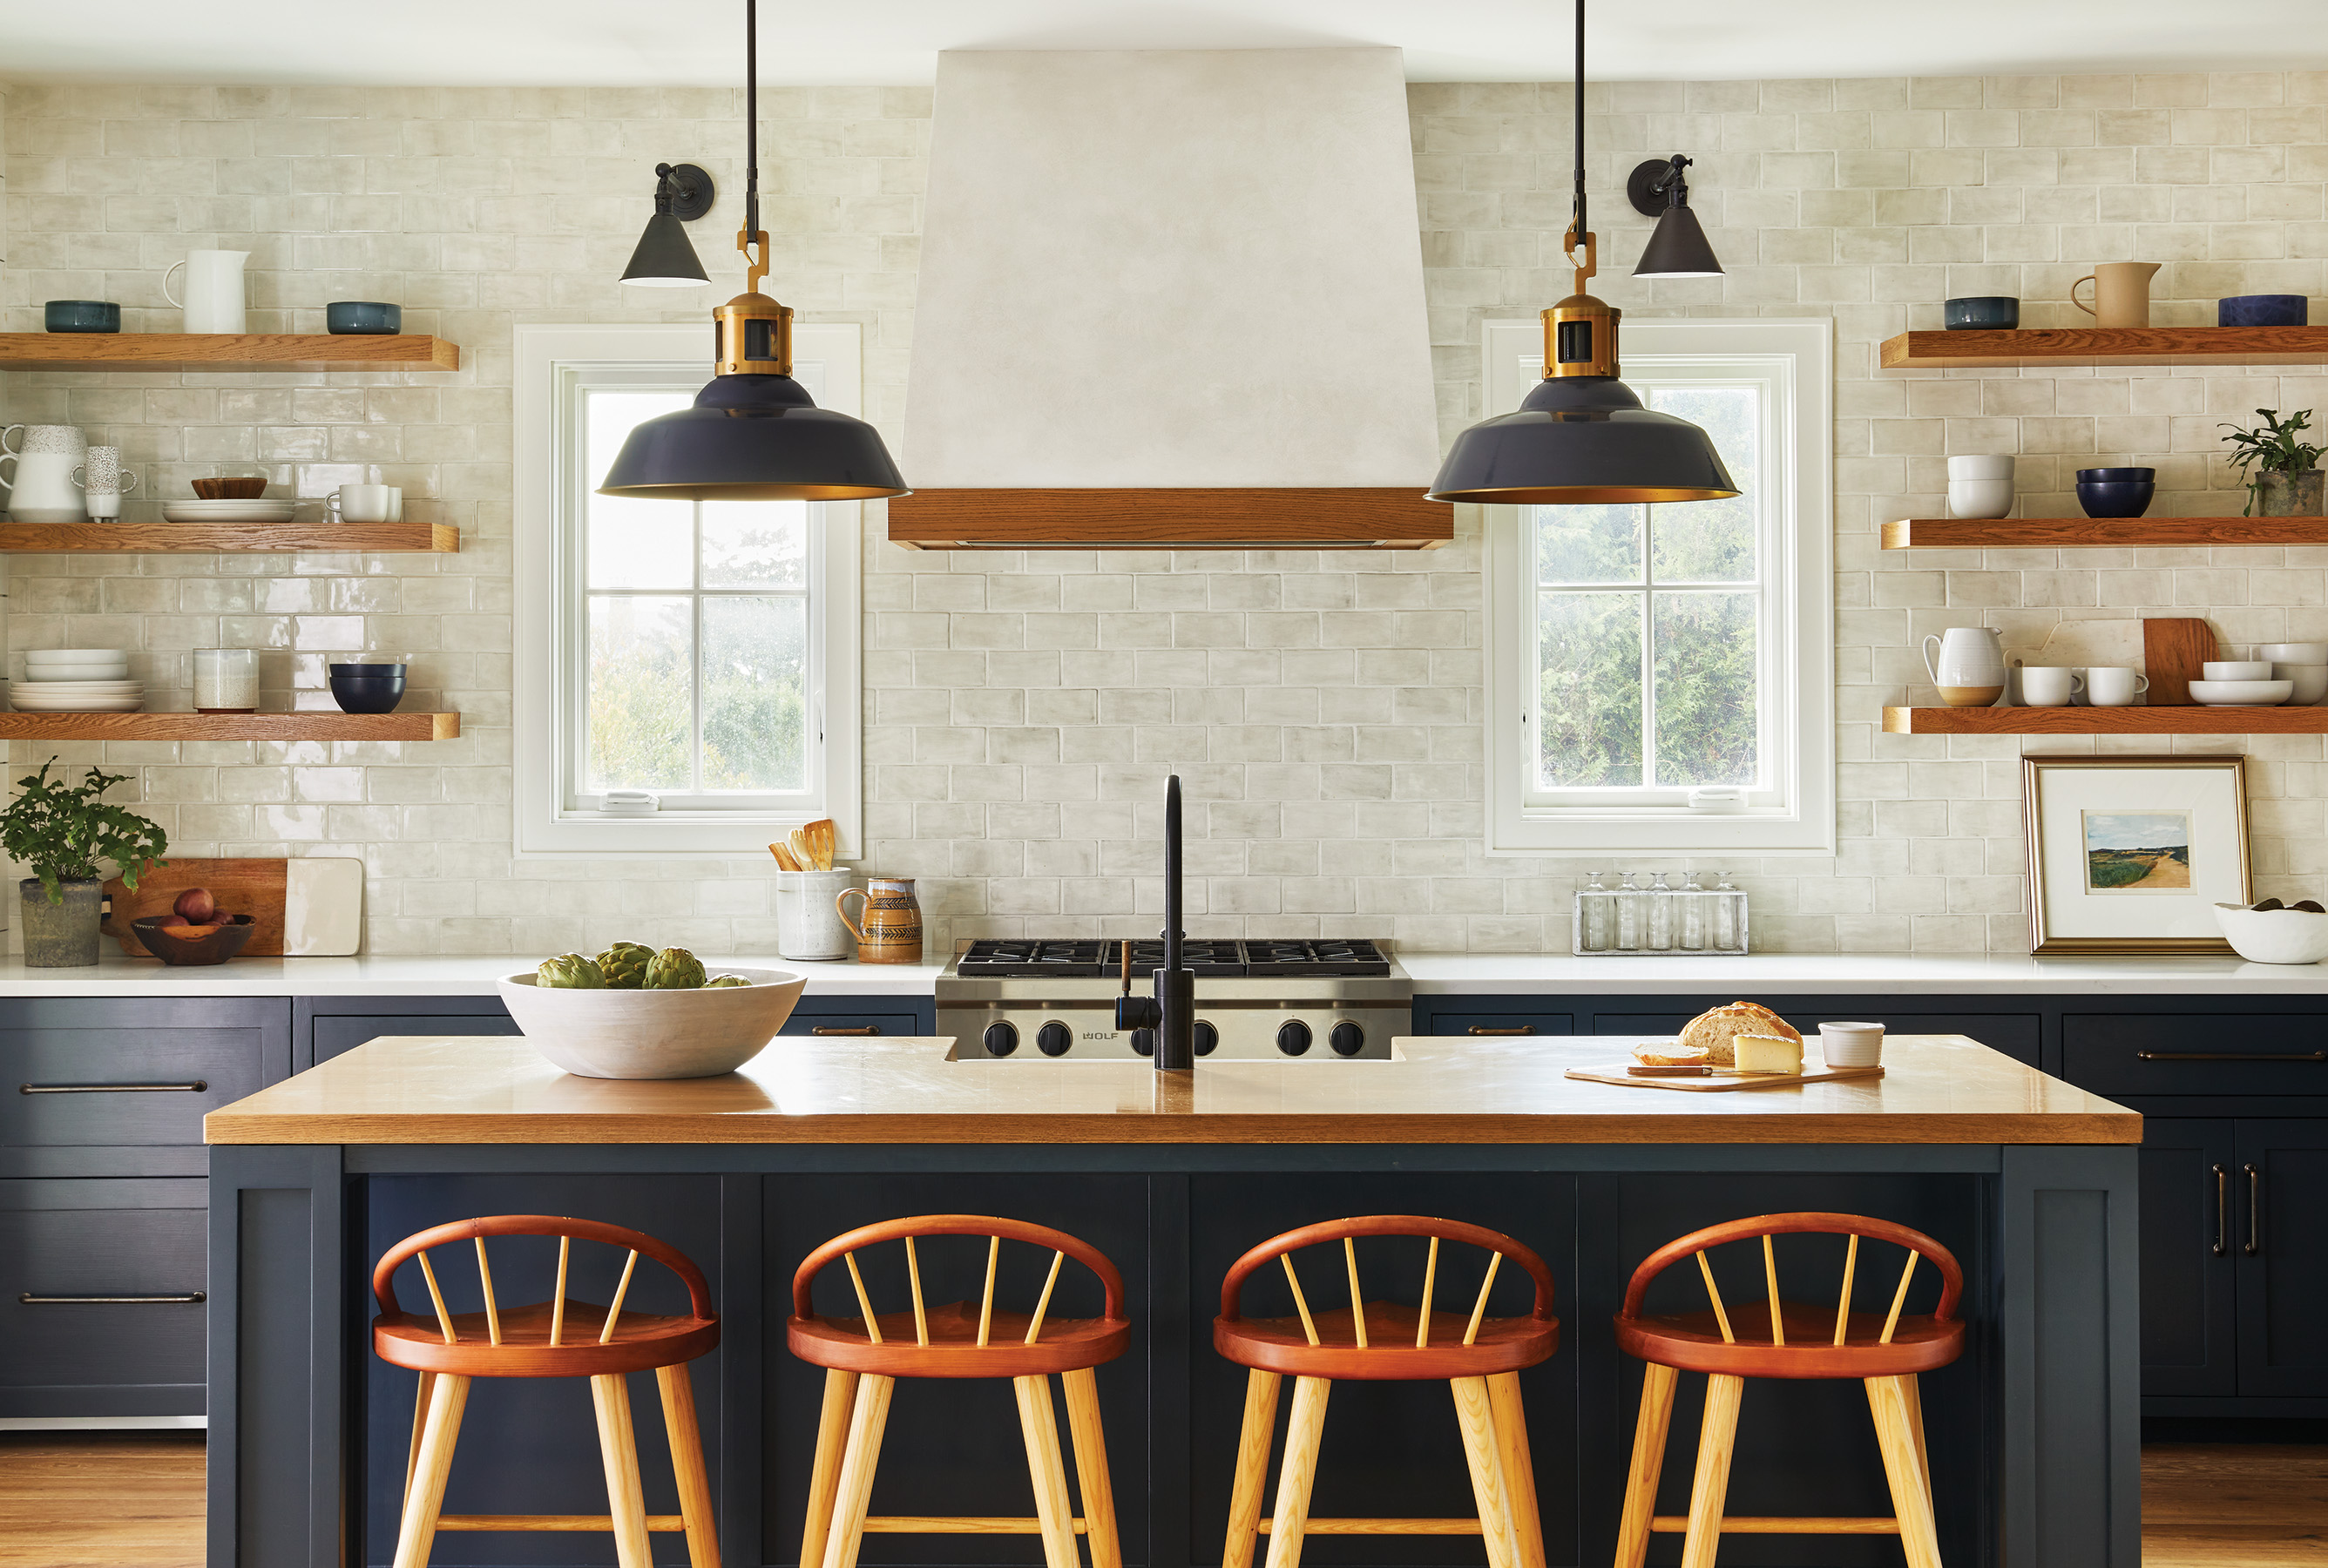 Birch and ash stools from New England furniture maker Thos.  Moser lines the island and the Urban Electric Co. pendants hang above it.